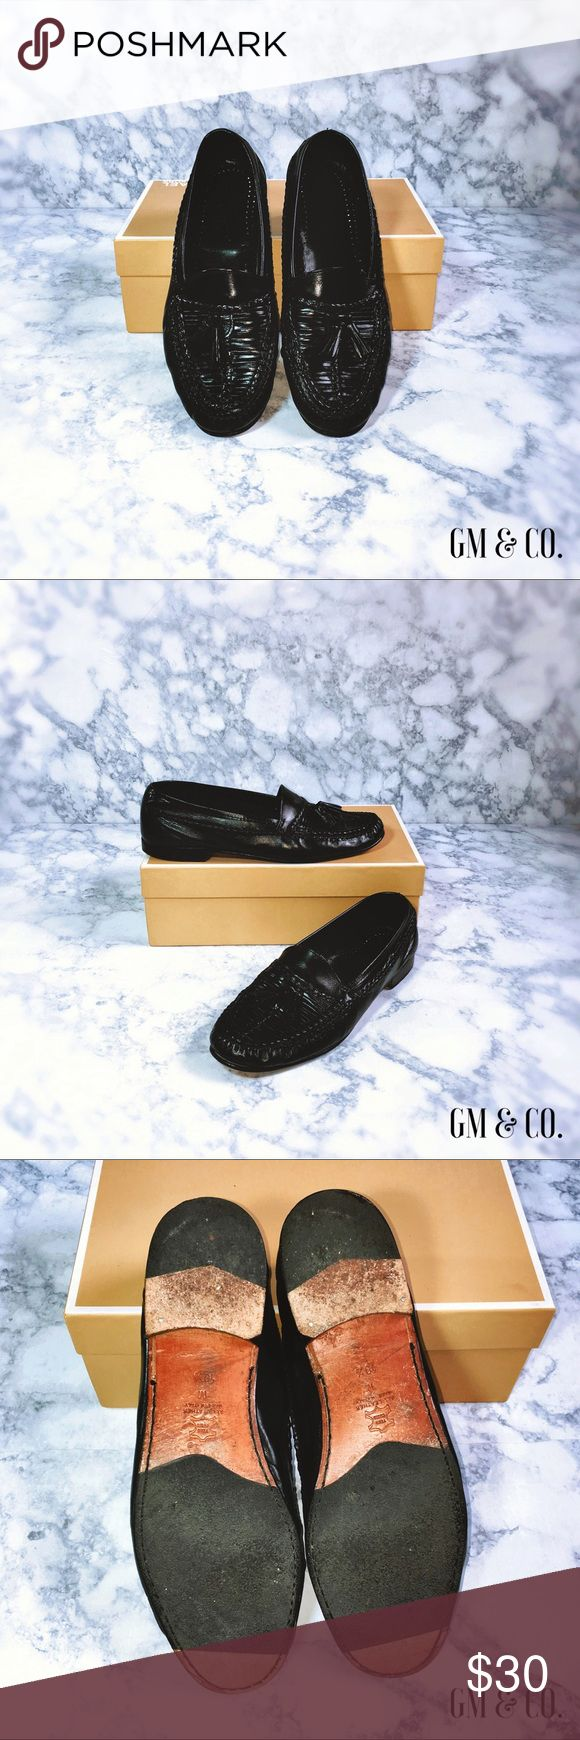 🏖SALE🏖Vito Rufolo Men's Dress Shoes🏖 Polished black, 💯 leather, made in Italy. Gently worn by my Dad, as seen in photos.  Thank you for stopping by my closet! Please let me know if you have any questions or if I may assist you with anything! GM Vito Rufolo Shoes Loafers & Slip-Ons